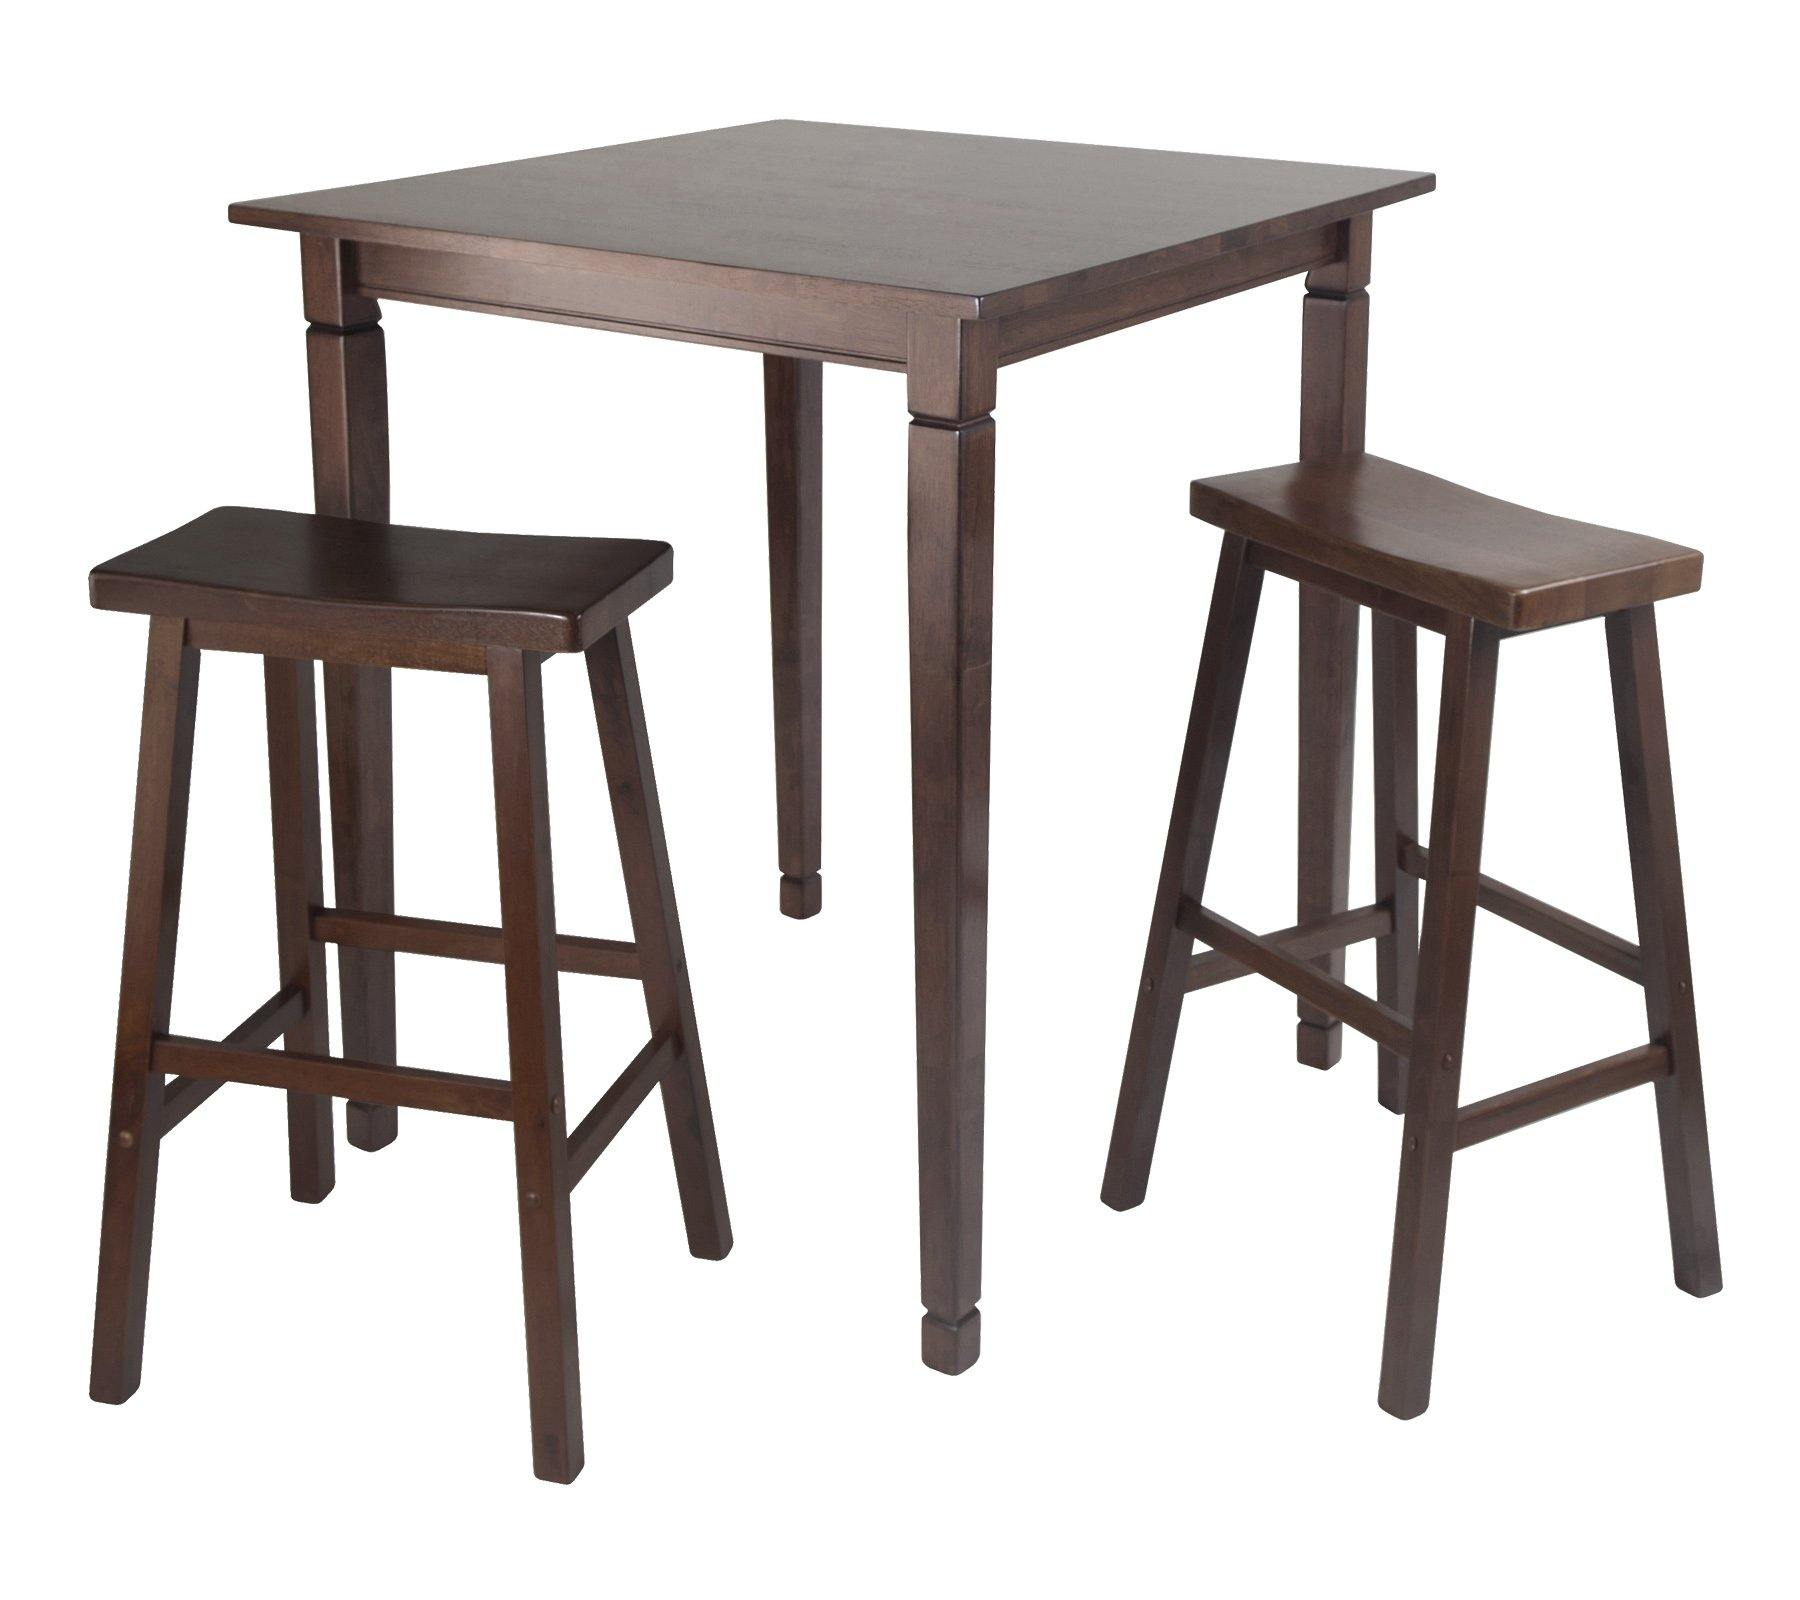 3Pc Kingsgate High/Pub Dining Table with Saddle Stool - My USA Furniture